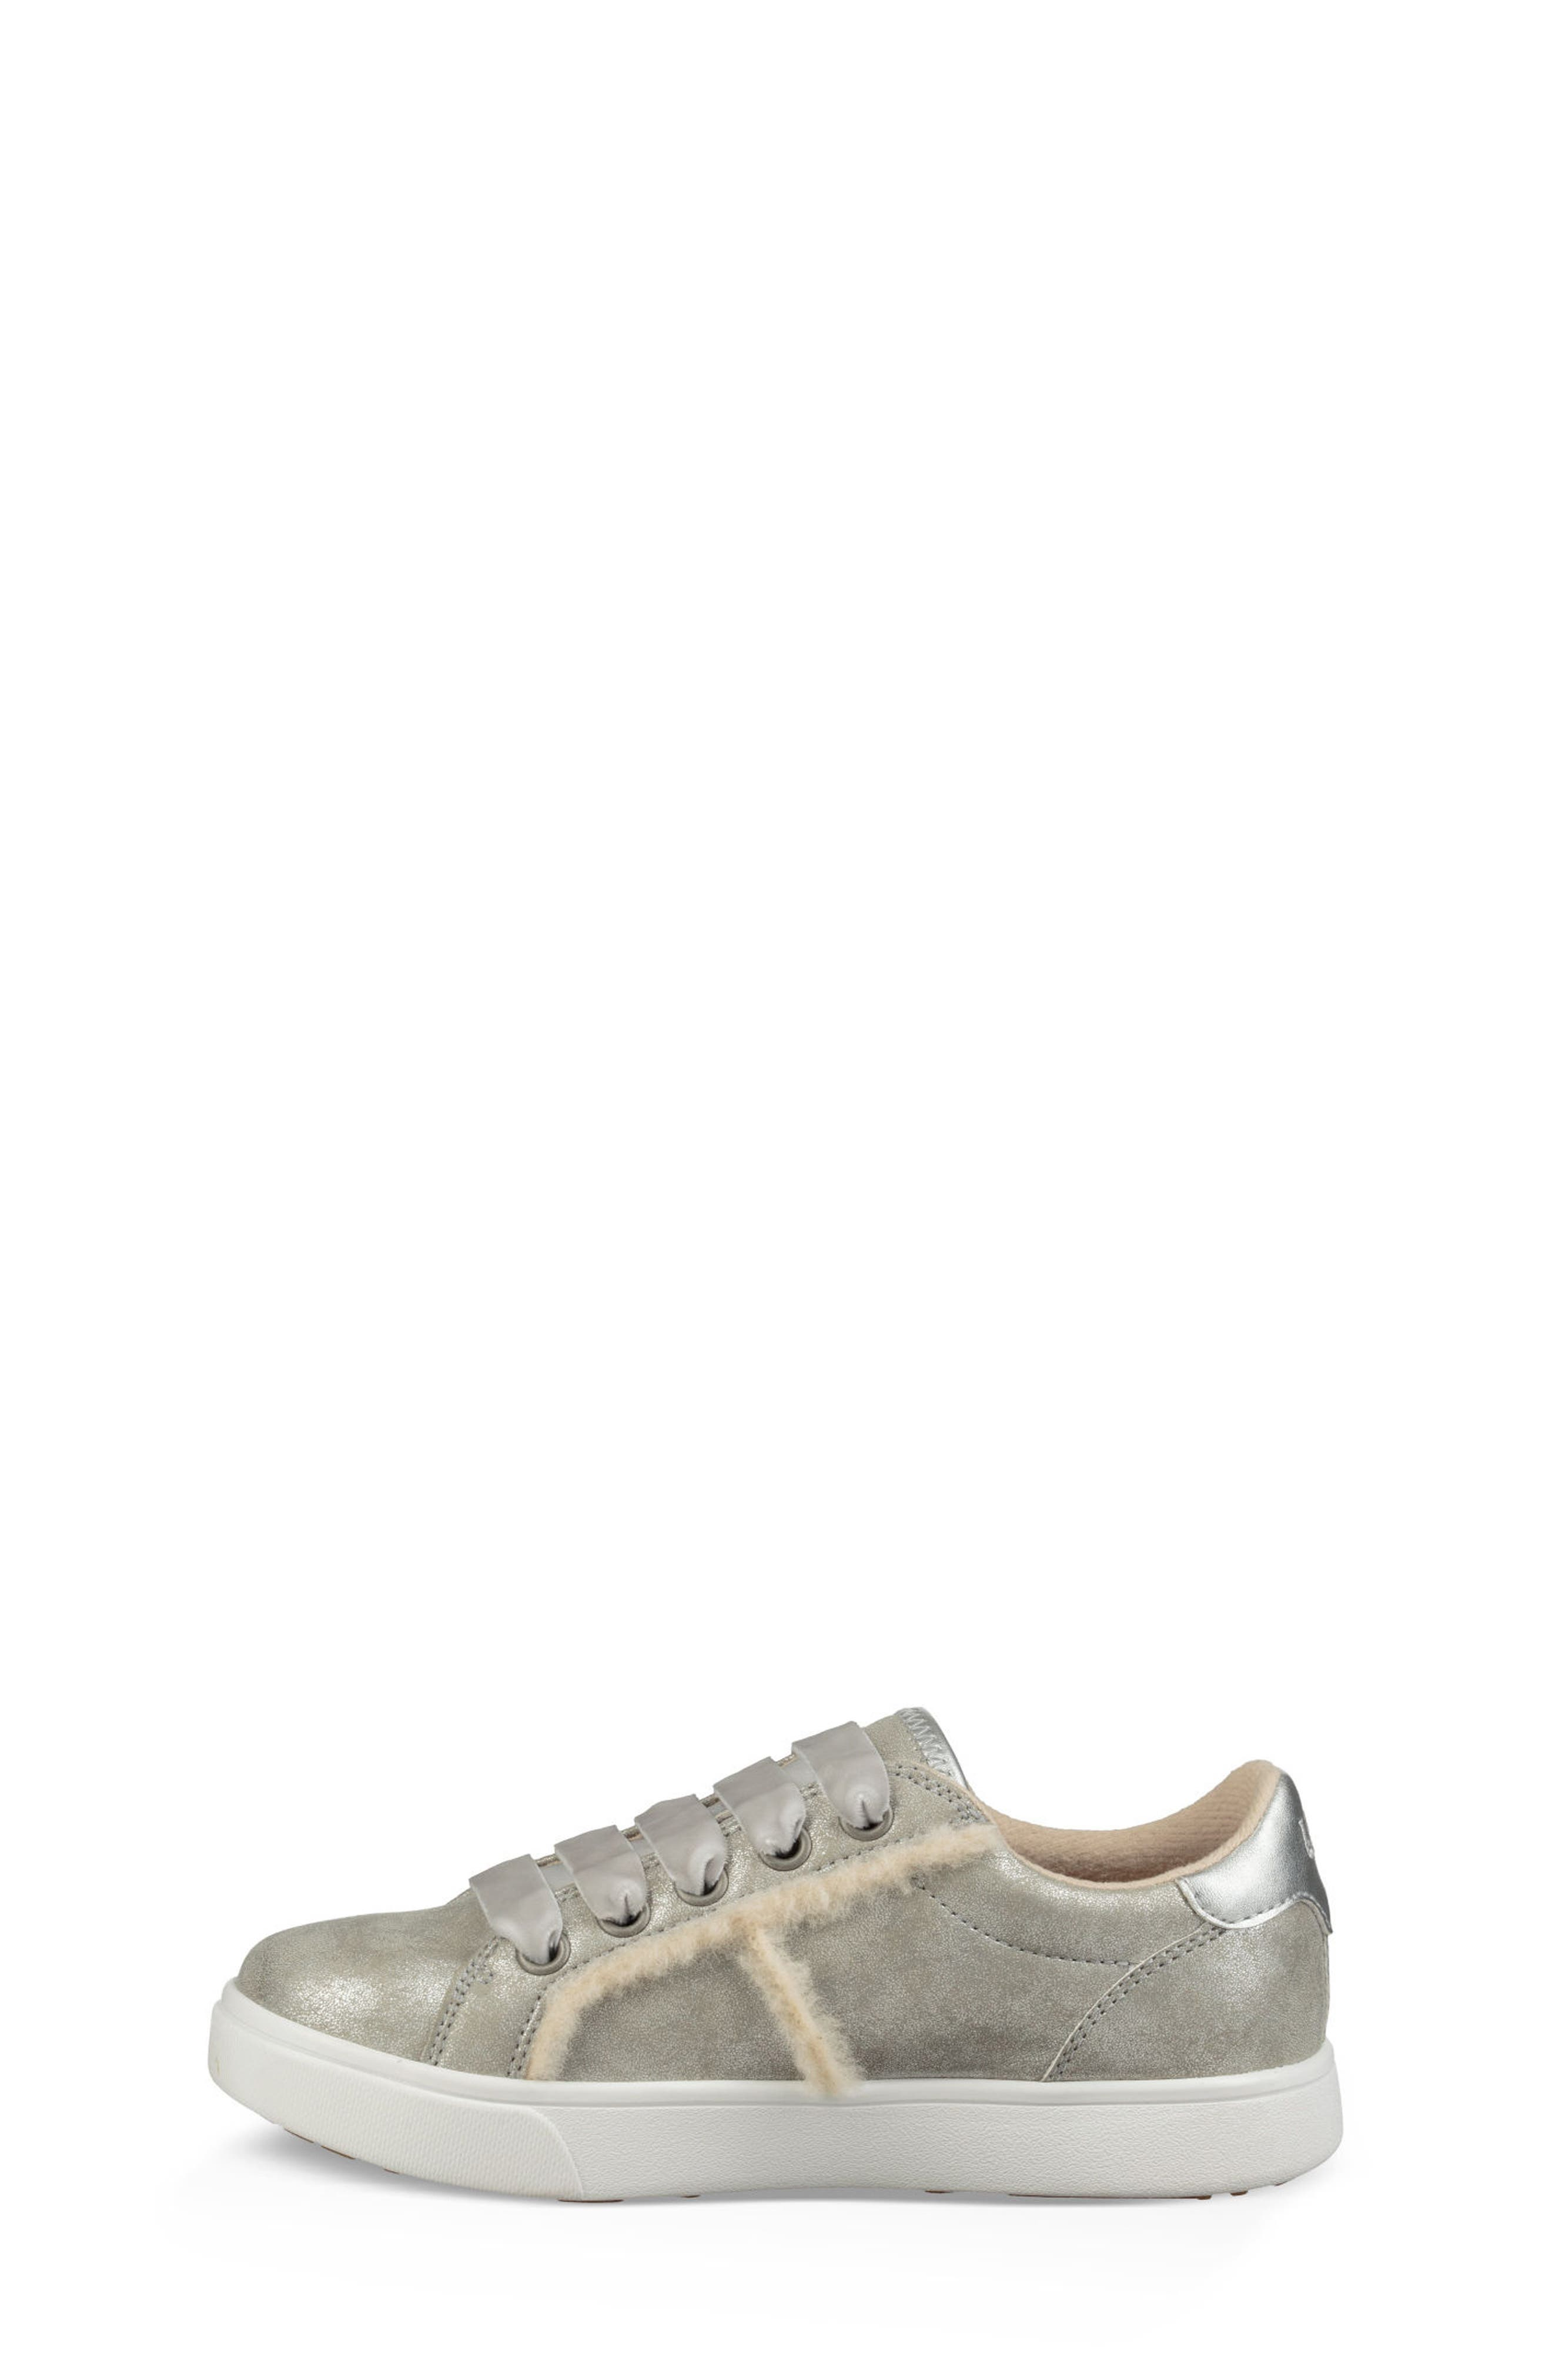 UGG<SUP>®</SUP>, Alanna Low Top Sneaker, Alternate thumbnail 5, color, SILVER